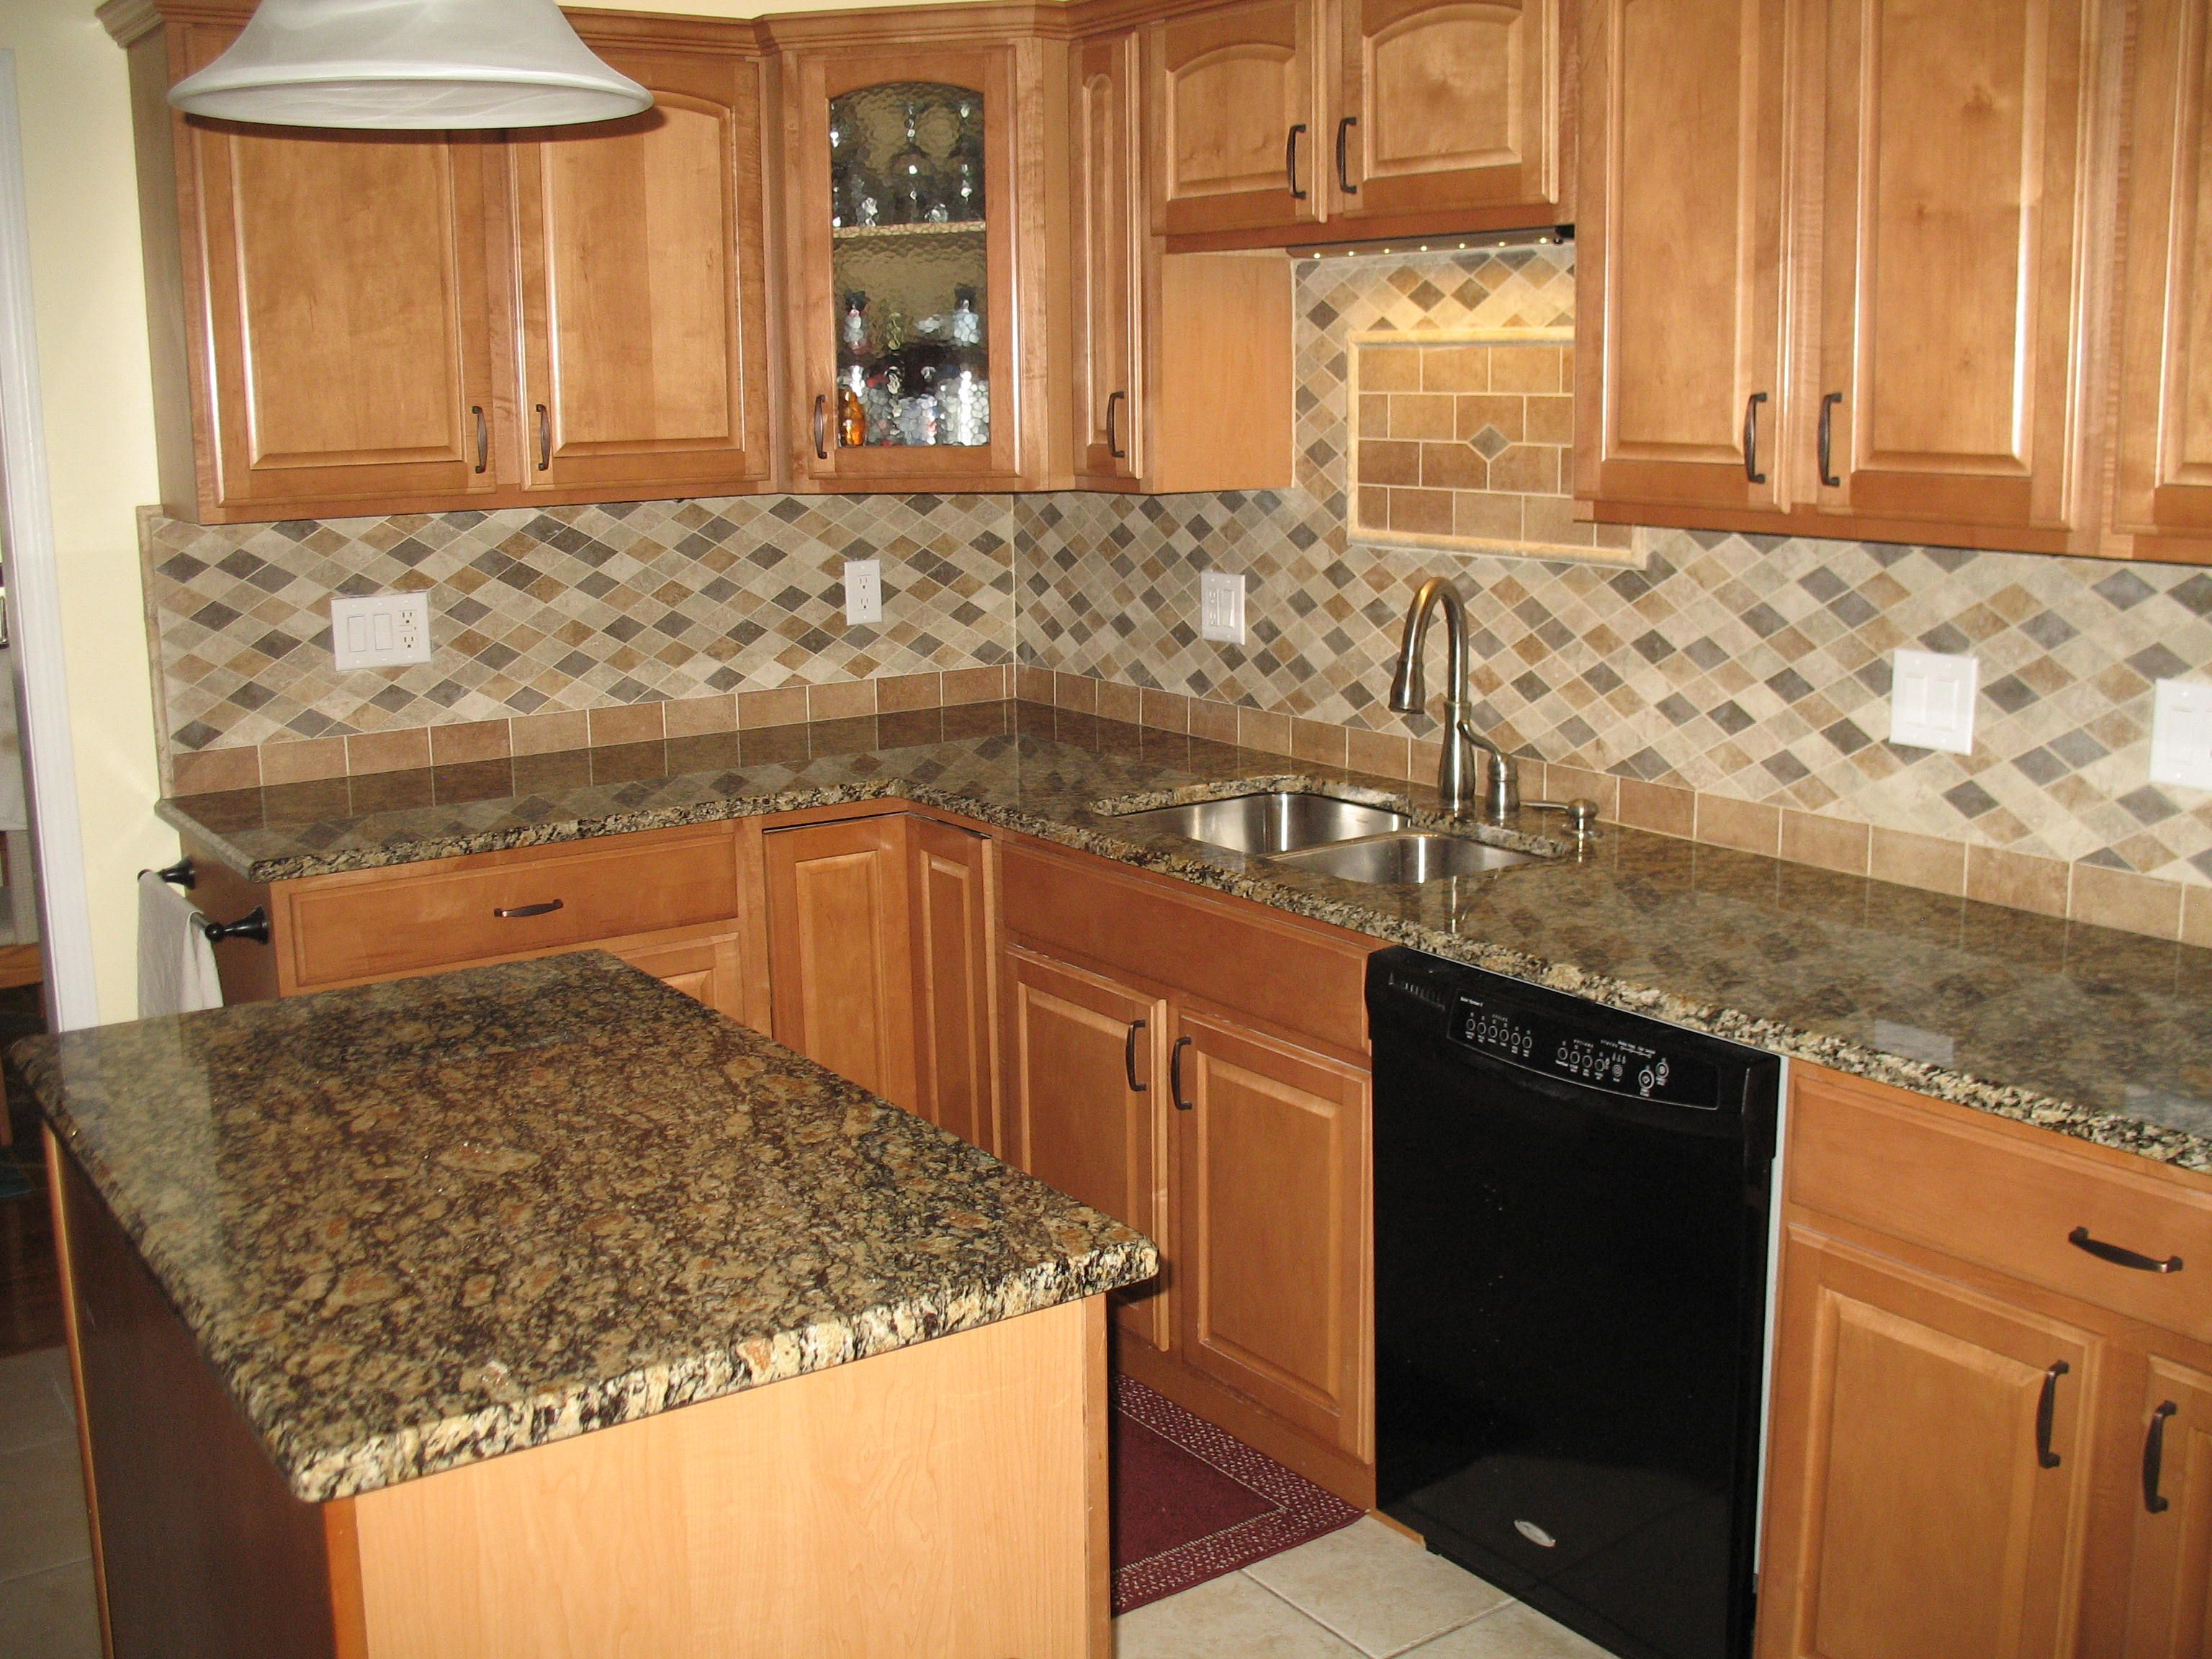 Oak Cabinets With Granite Countertops Pictures Golden Oak Cabinets Granite Countertops Portofino